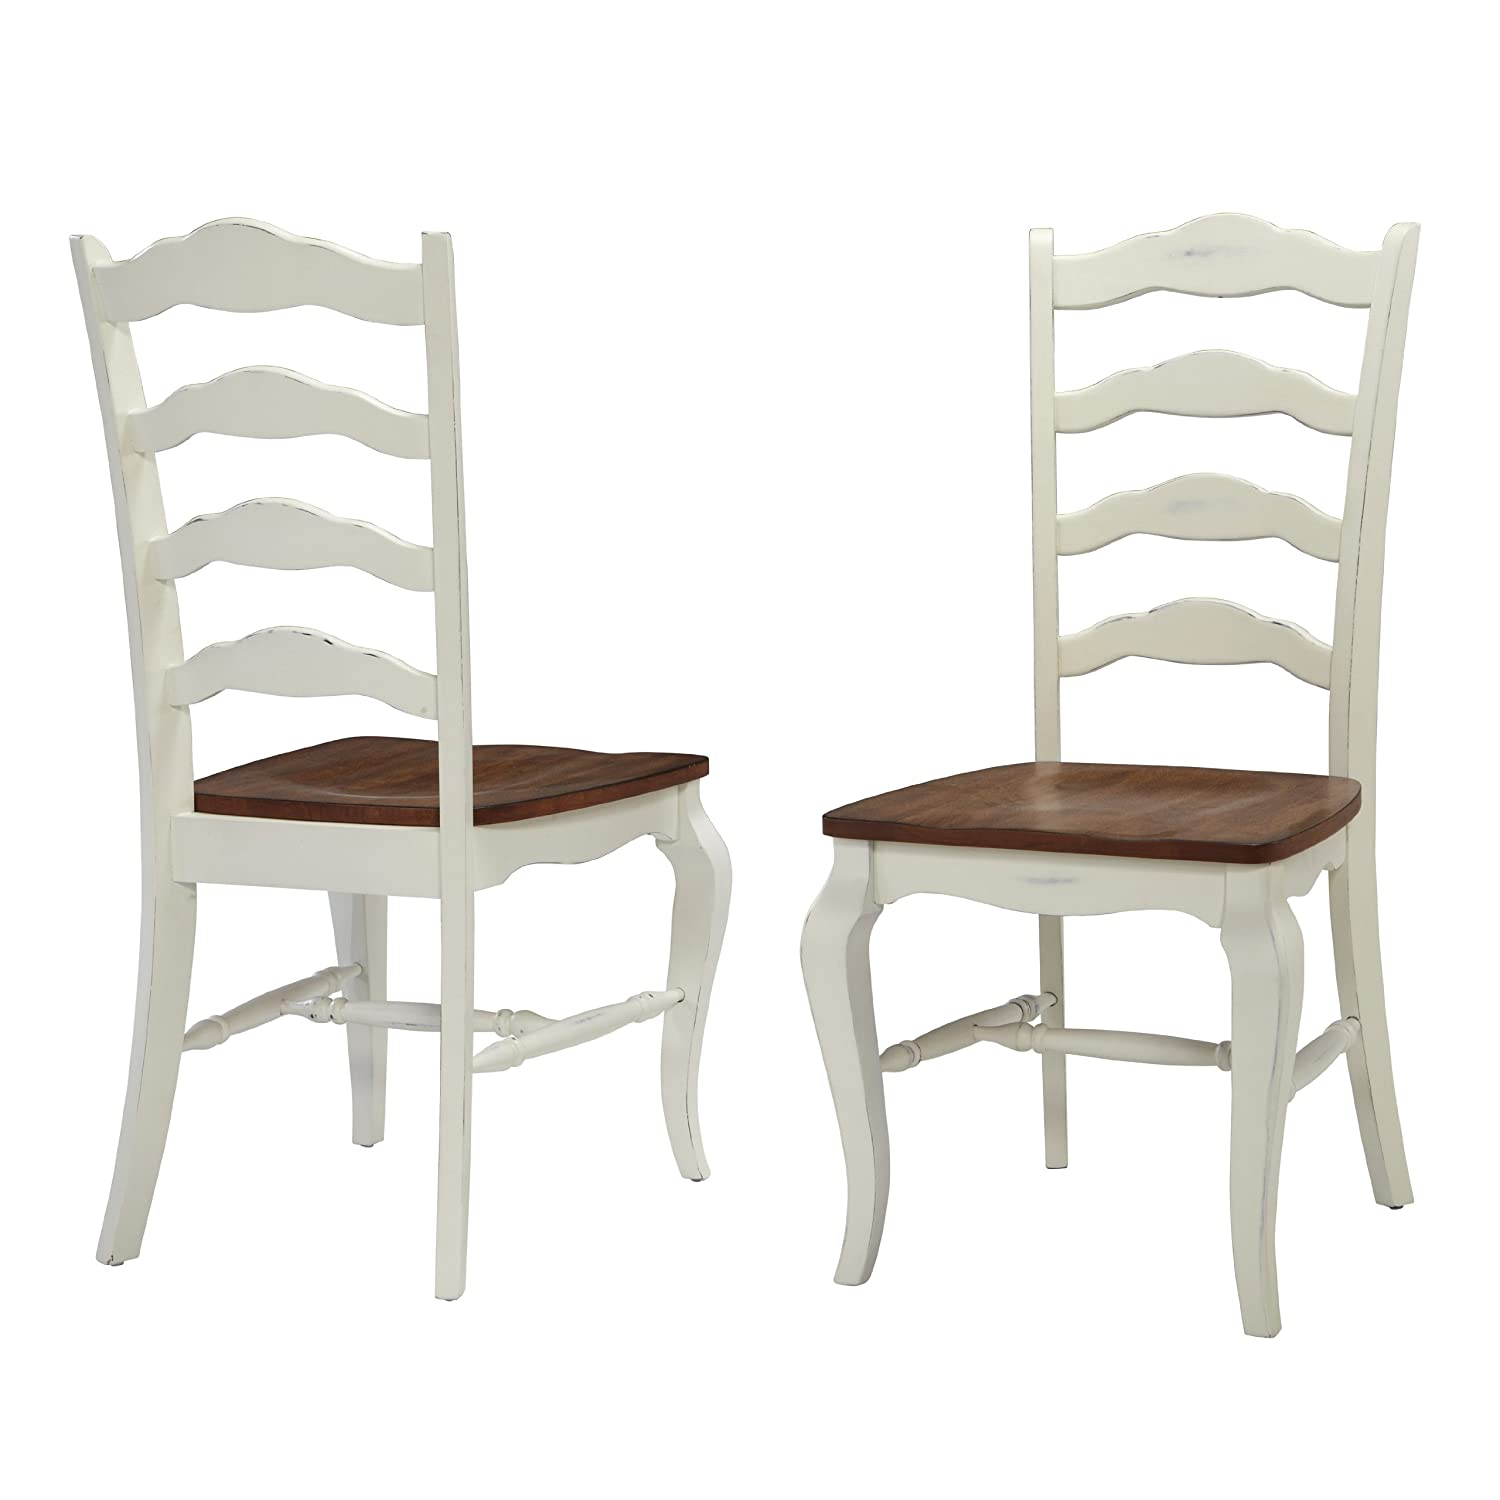 French Countryside Oak White Pair of Chairs by Home Styles